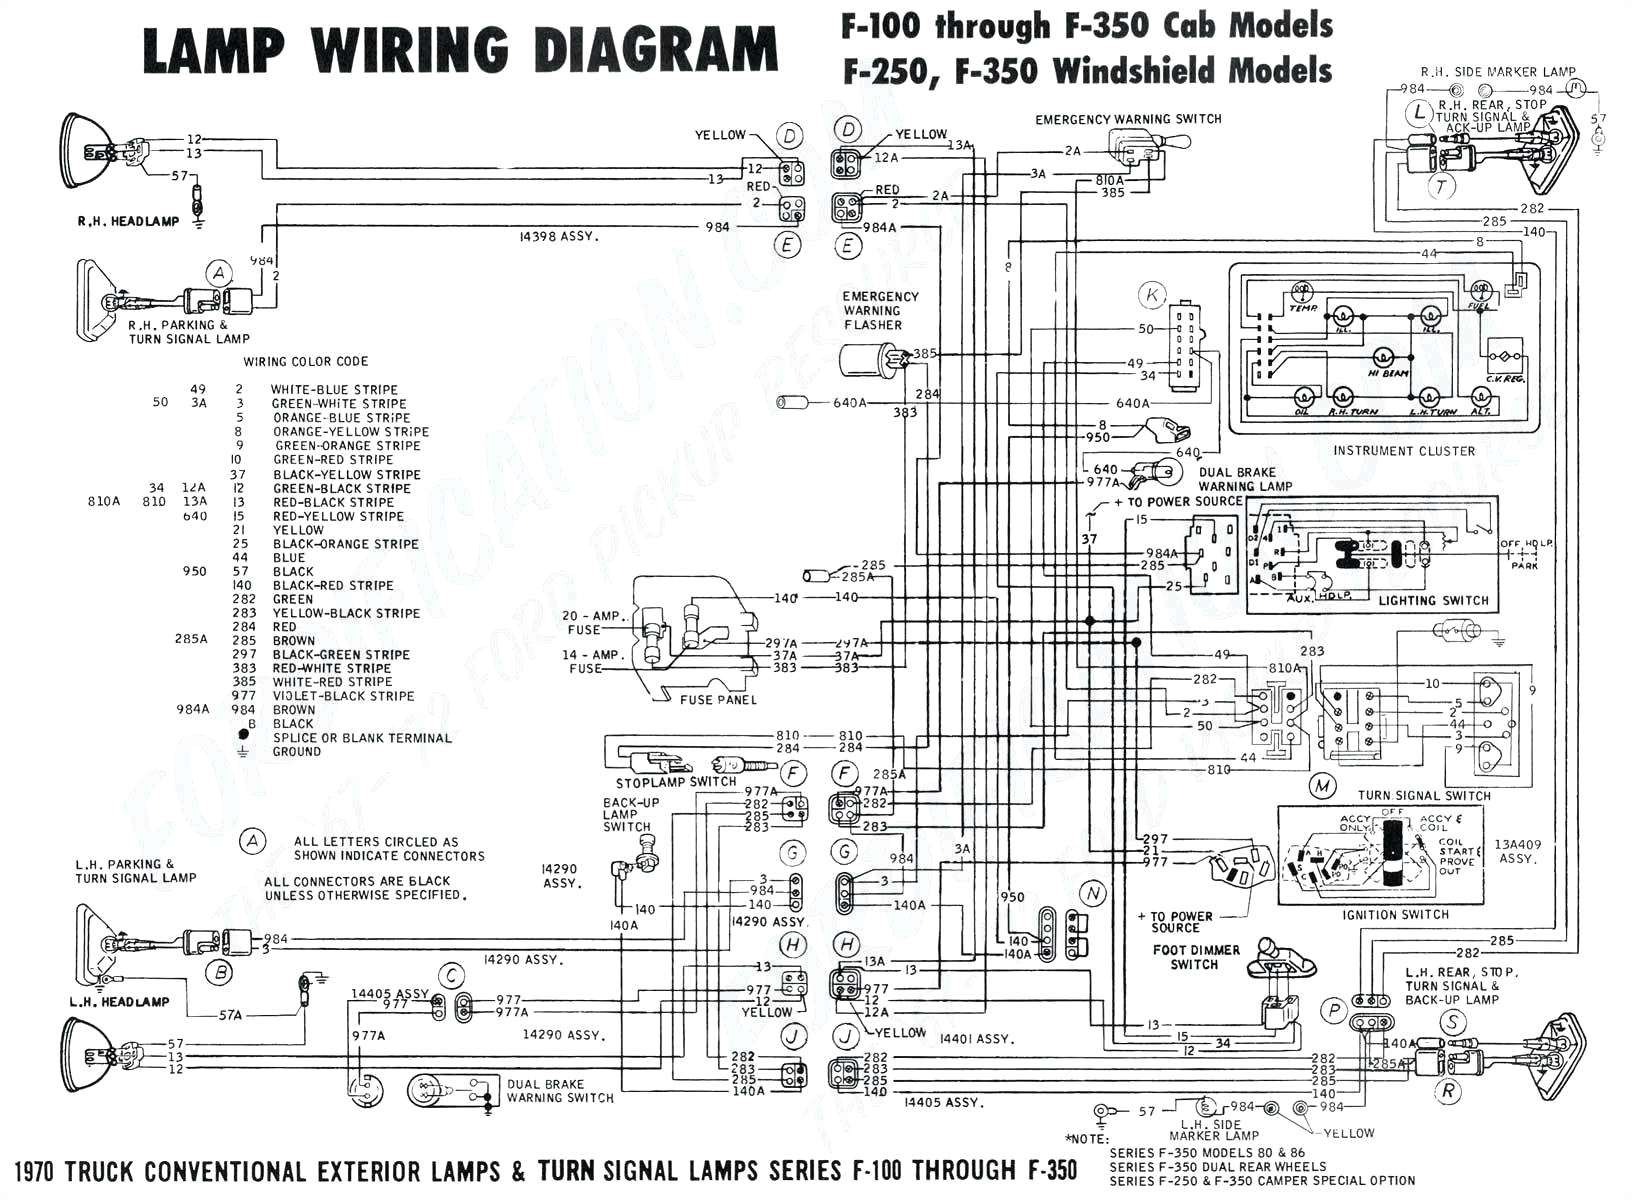 Wiring Diagram for Electric Trailer Brakes Ram towing Wiring Diagram Wiring Diagram Database